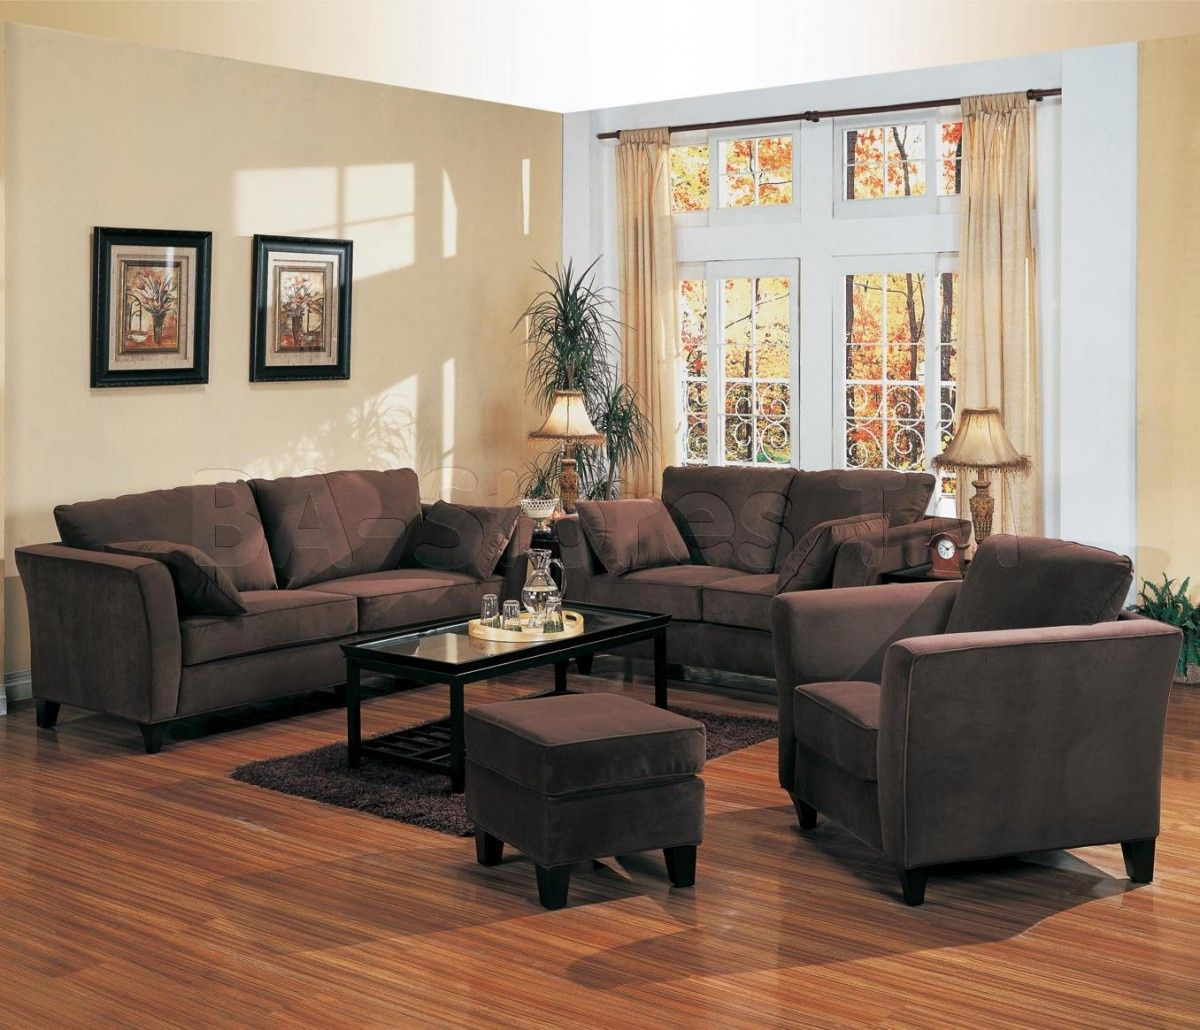 paint to go with brown furniture best paint for wood on best living room colors id=98613